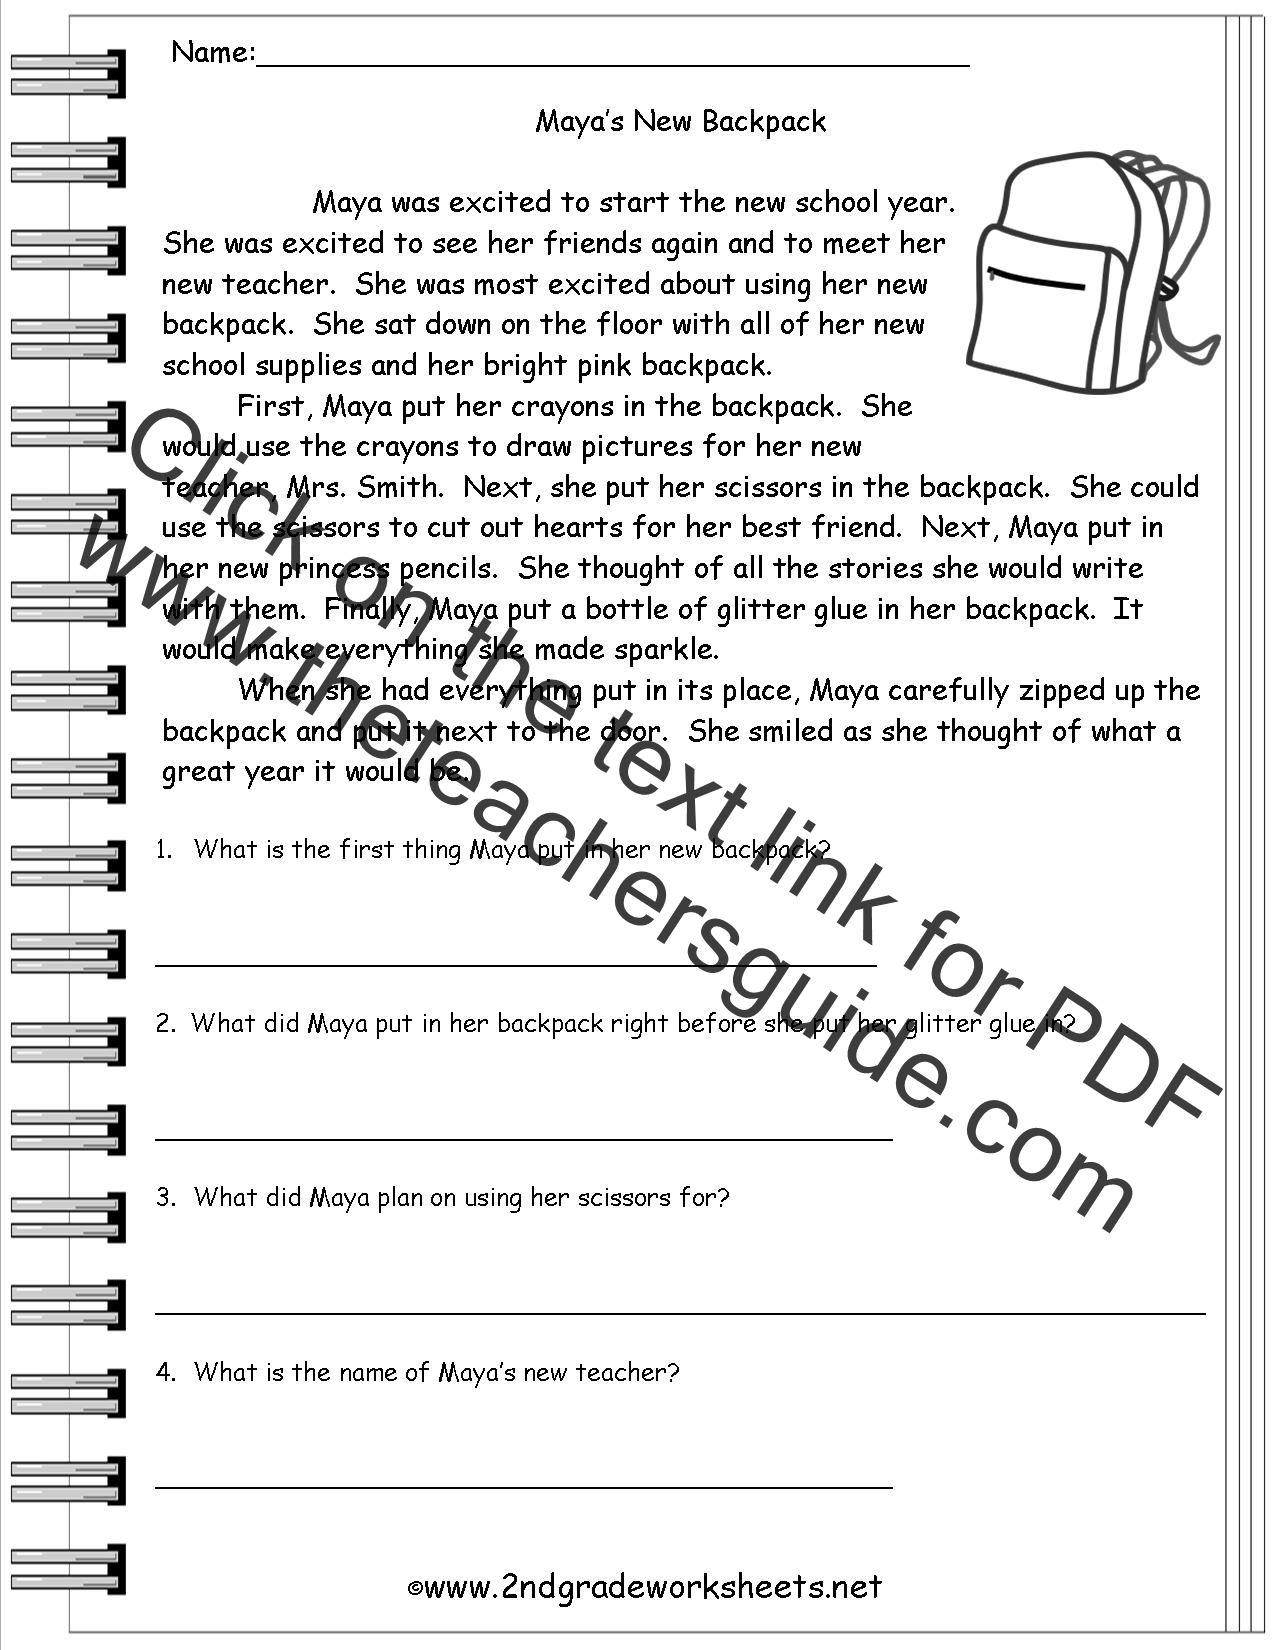 Worksheet Reading Comprehension For 2nd Graders reading worksheeets literature worksheets